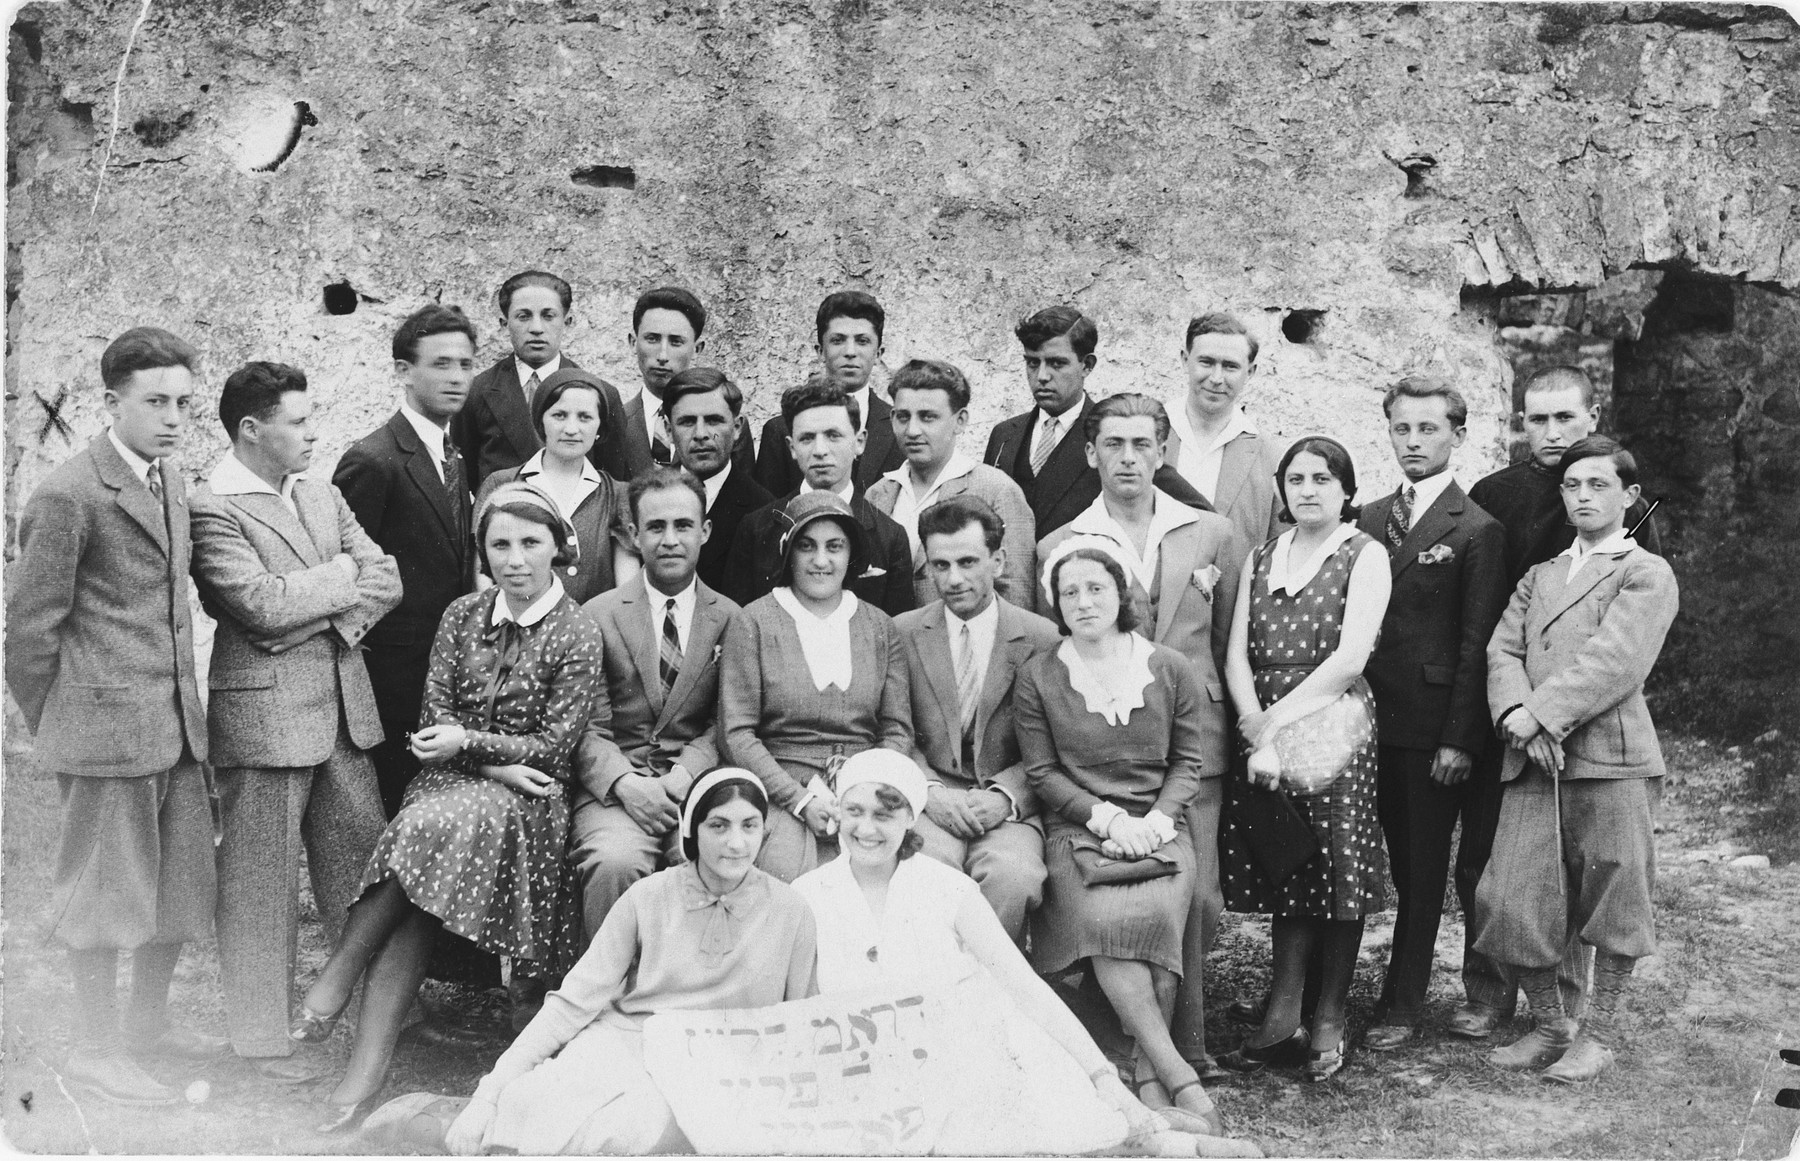 Group portrait of members of the I.L. Peretz drama club in Czortkow.  Clara Bezner is in the front left.